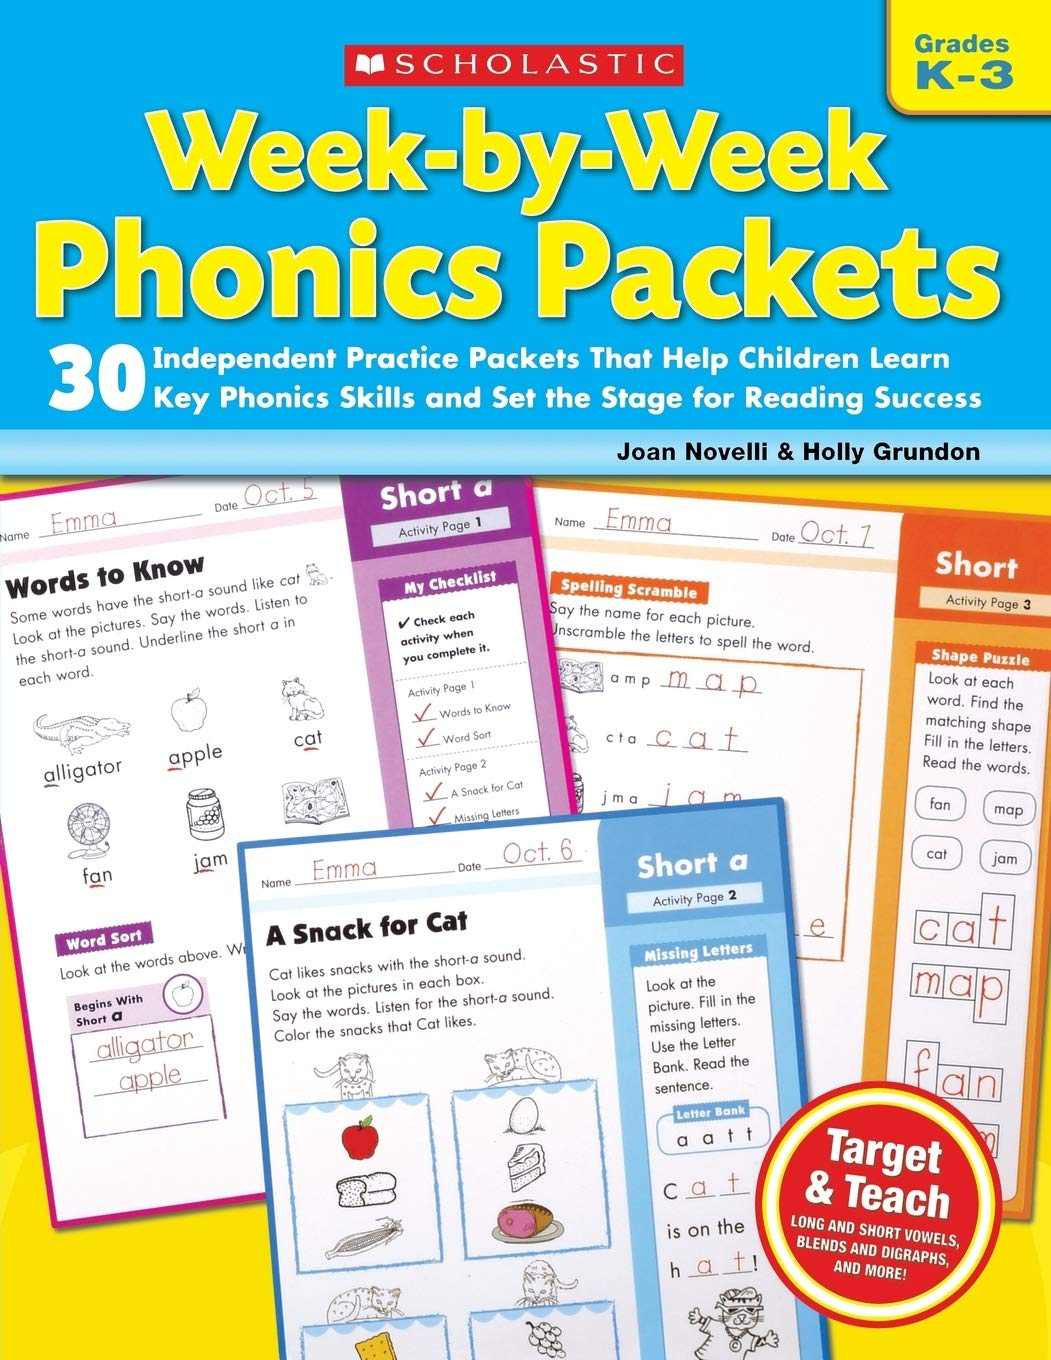 Week-by-Week Phonics Packets: 30 Independent Practice Packets That Help Children Learn Key Phonics Skills and Set the Stage for Reading Success